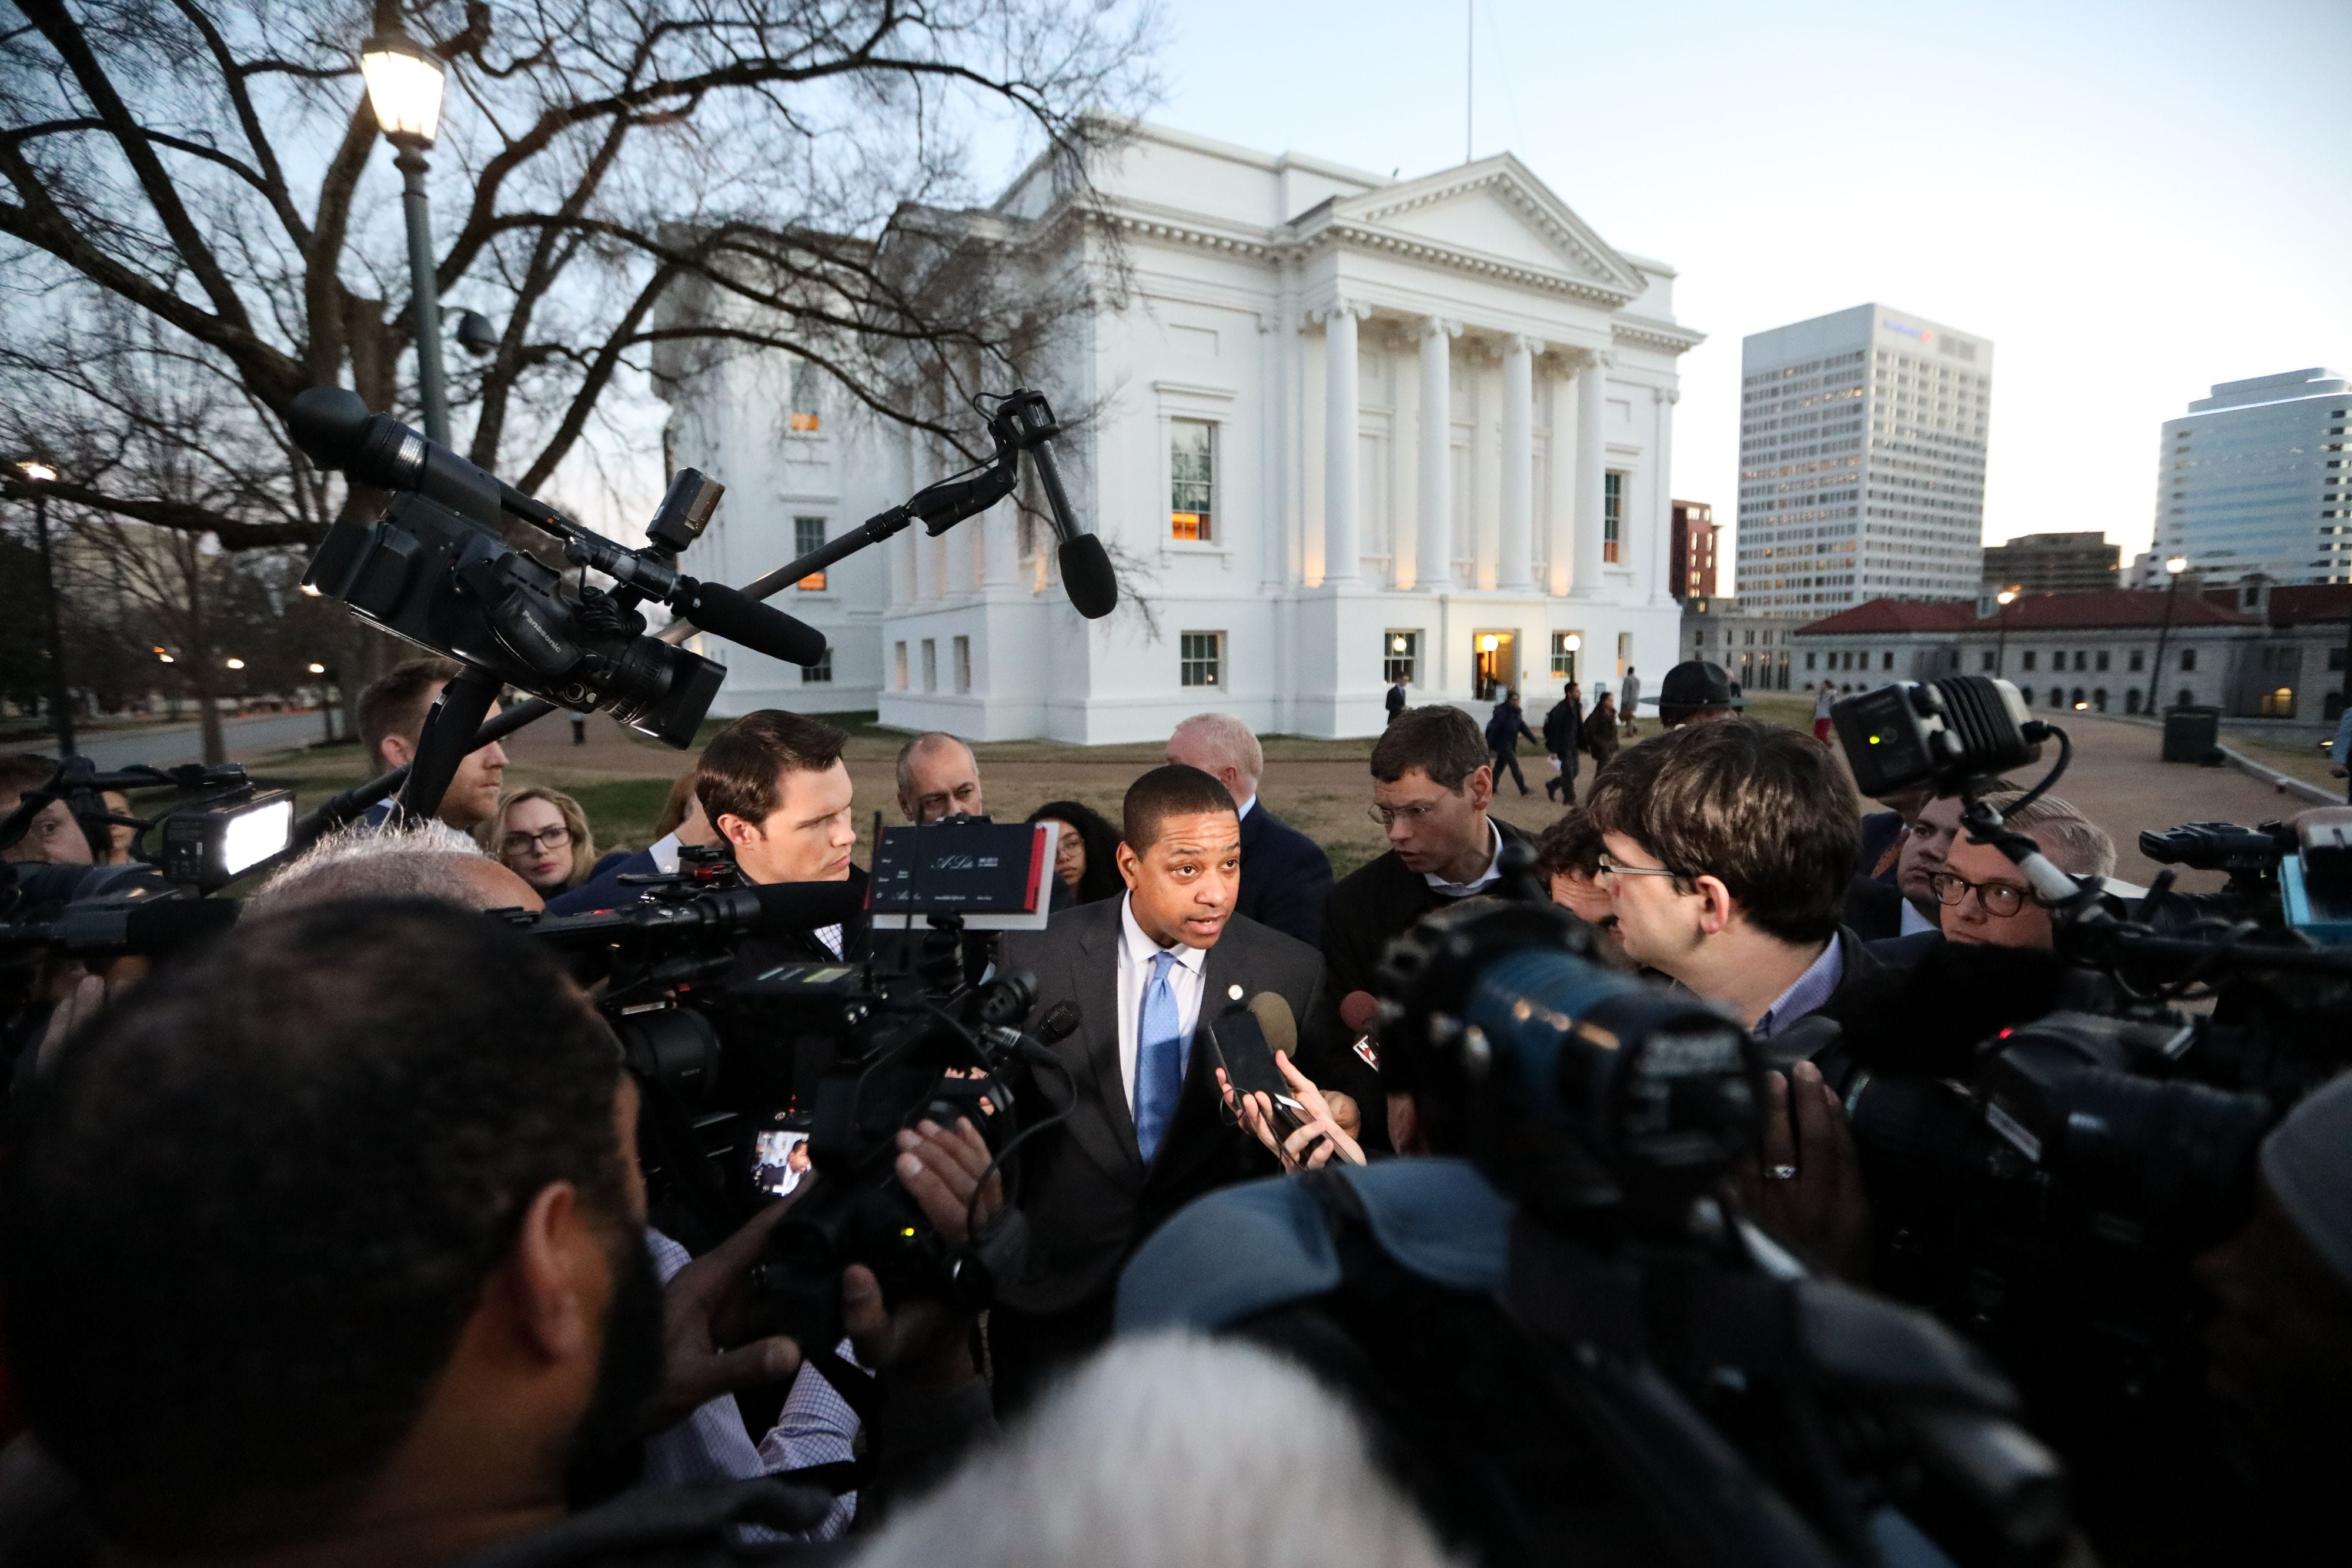 Accuser vs accused: What both sides say in latest assault claim against Virginia Lt. Governor Justin Fairfax